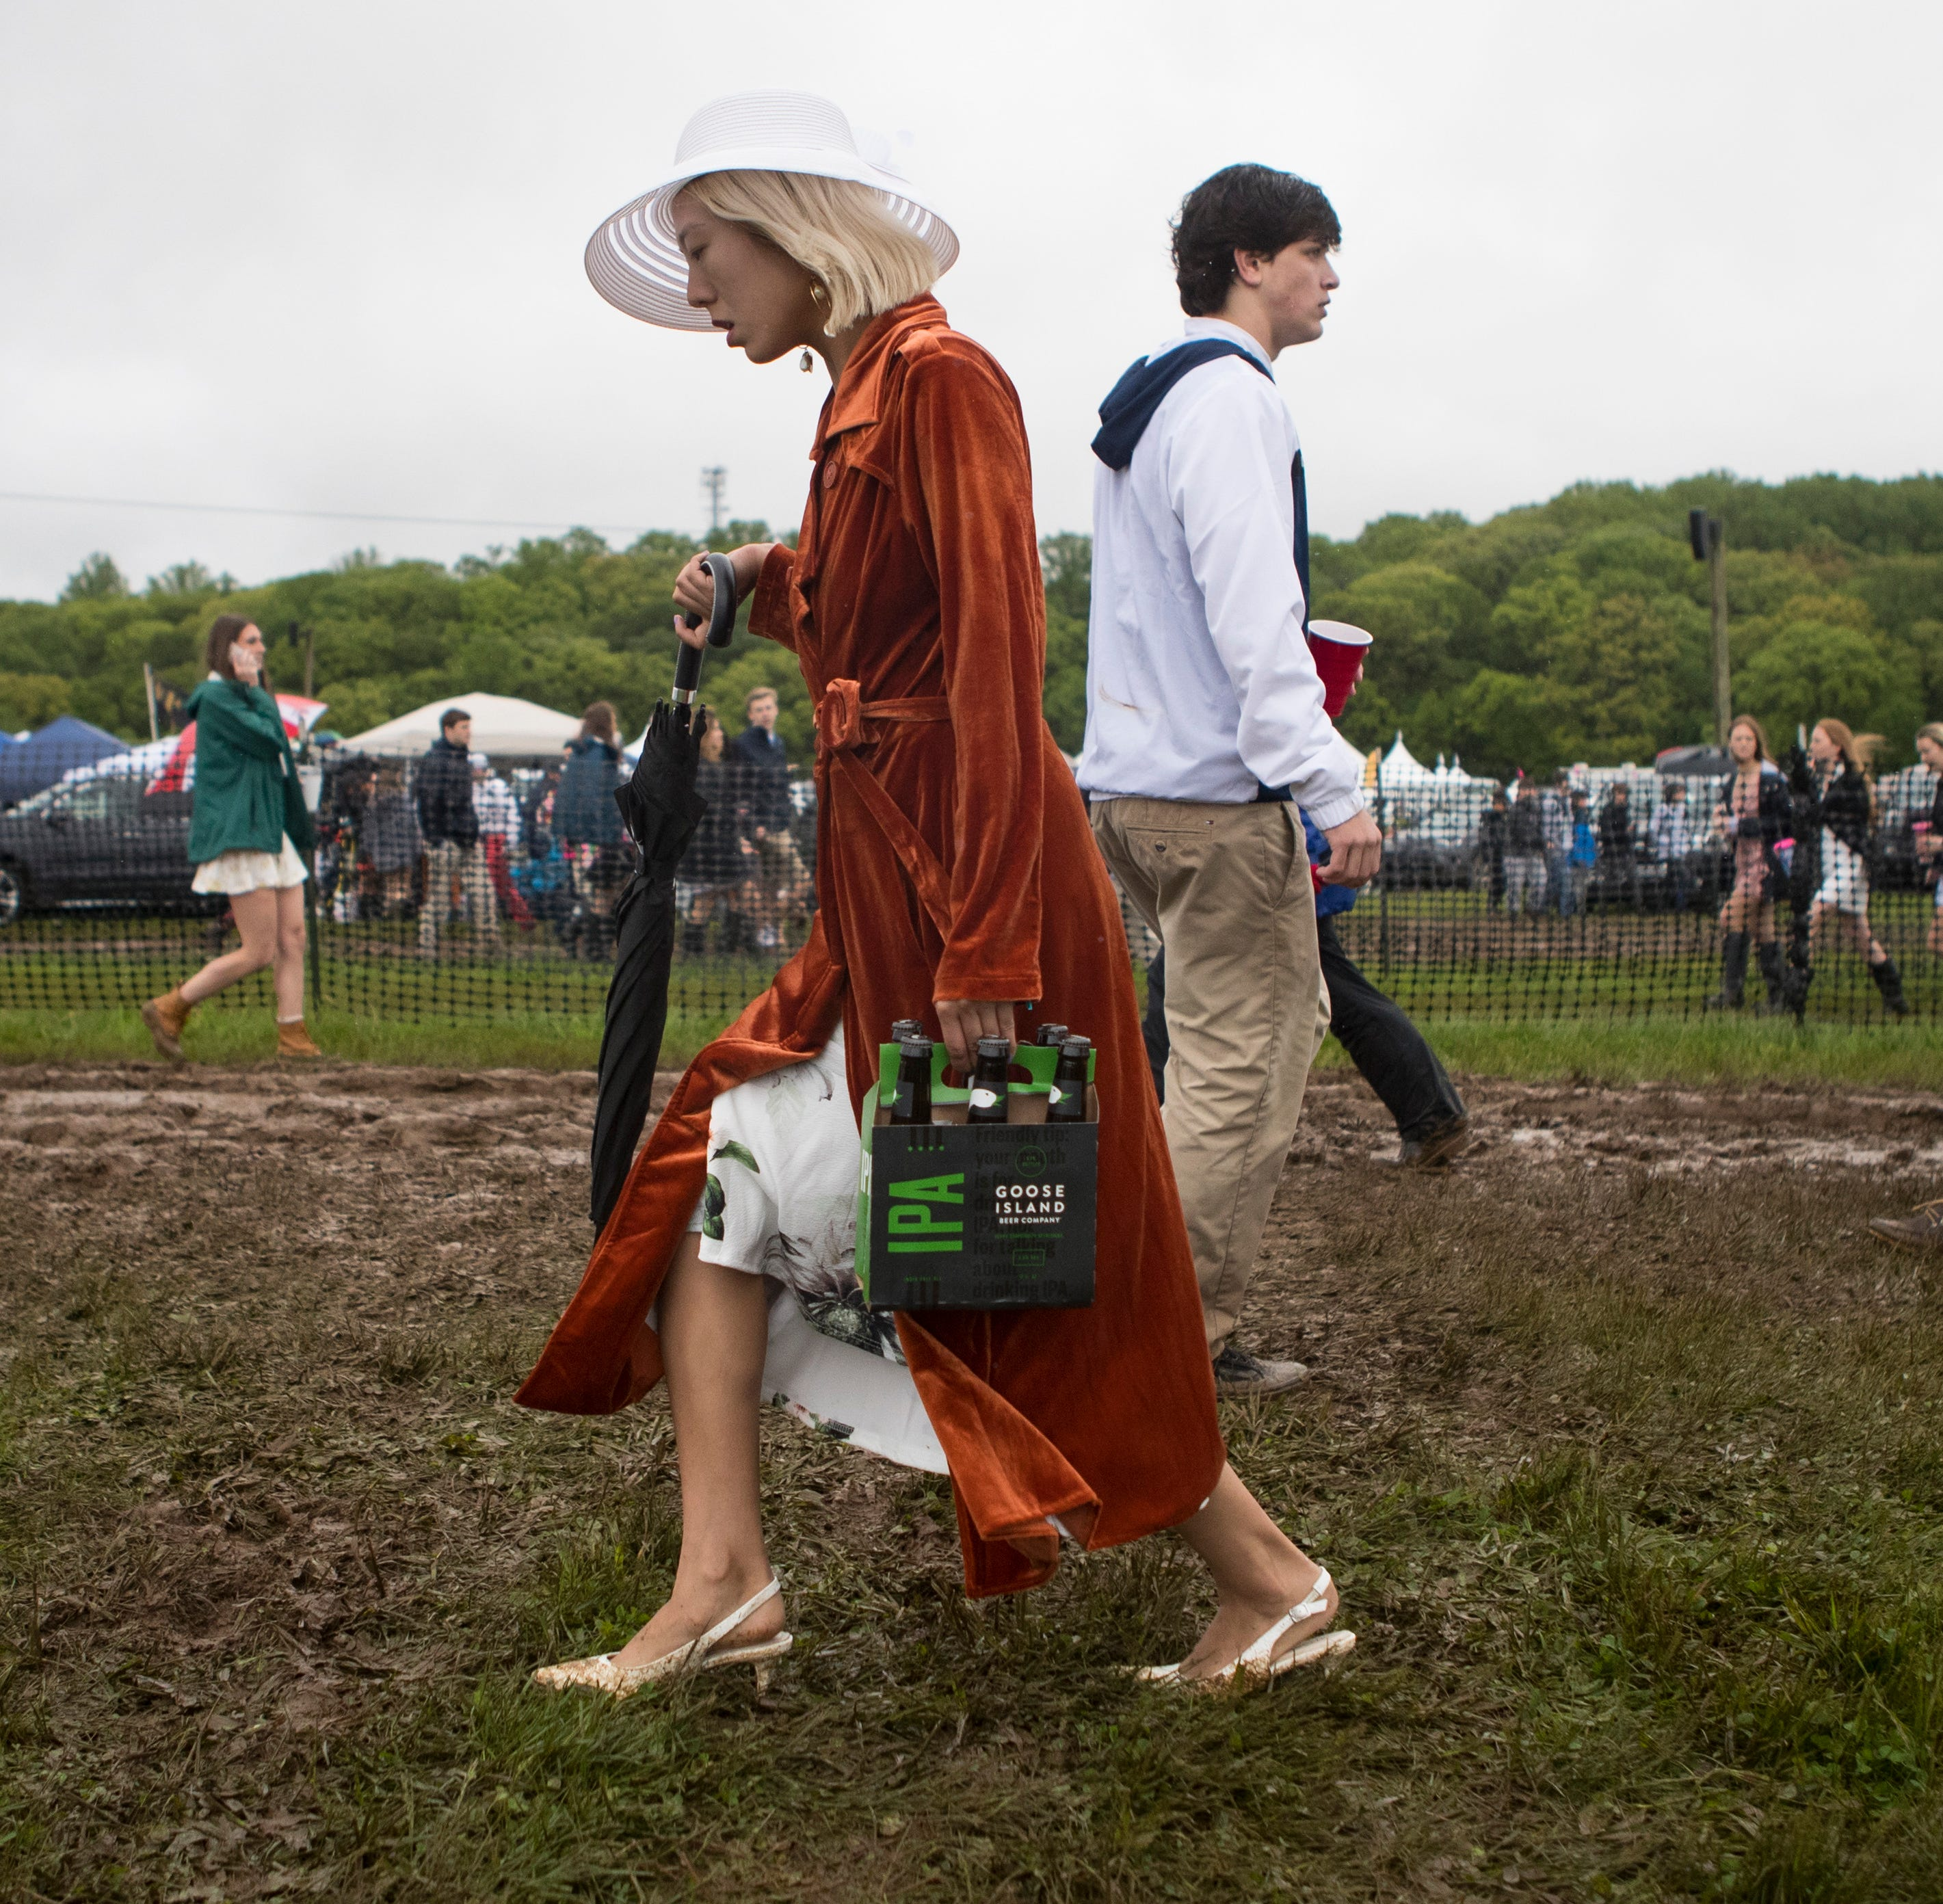 'You get dirty:' Guests tromp through mud at rain-logged Point-to-Point at Winterthur